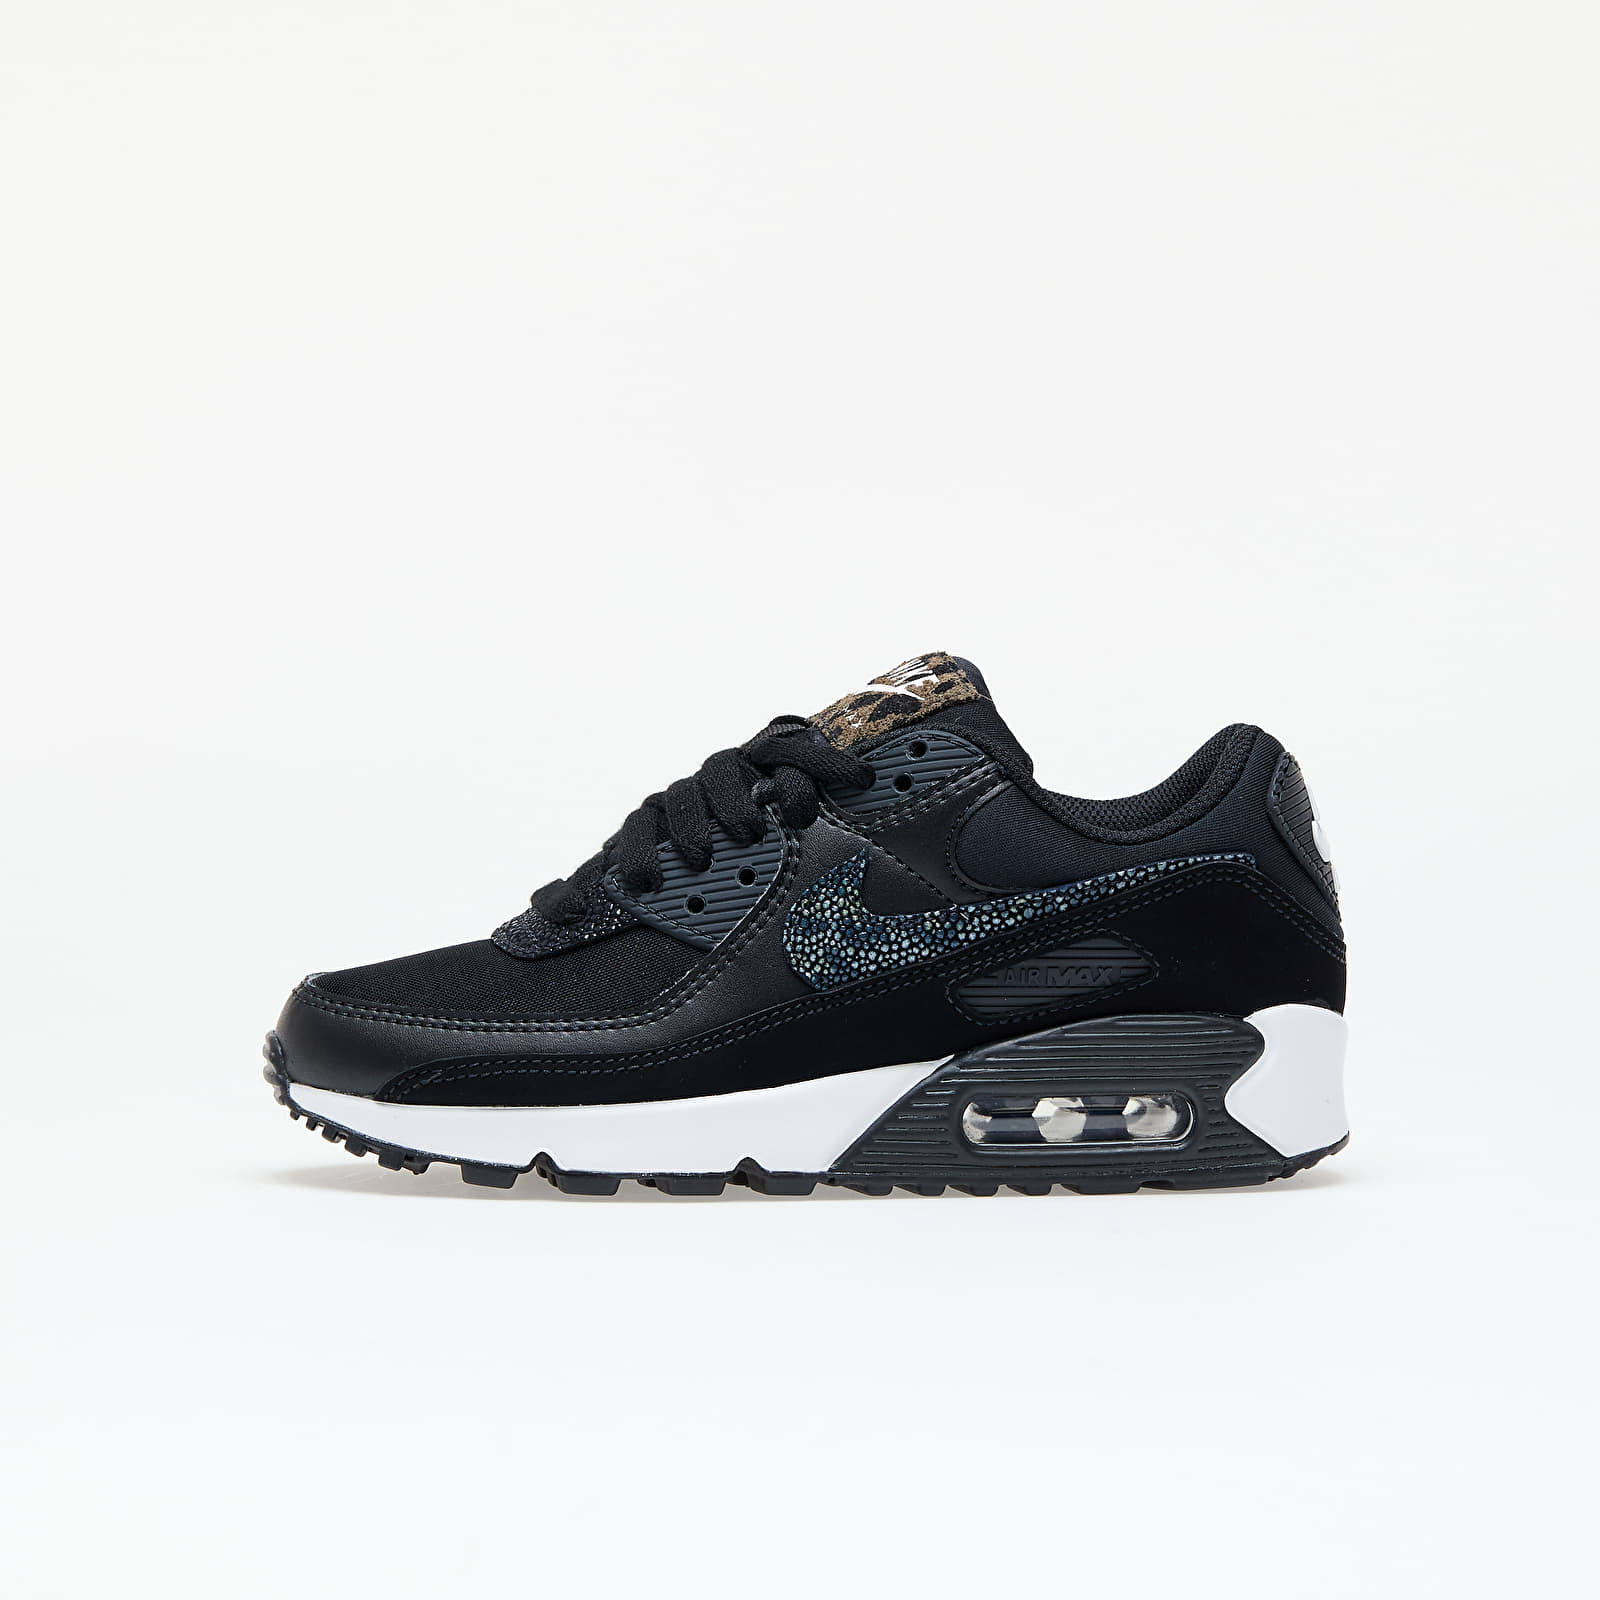 Nike W Air Max 90 SE Black/ Black-Off Noir-White EUR 41